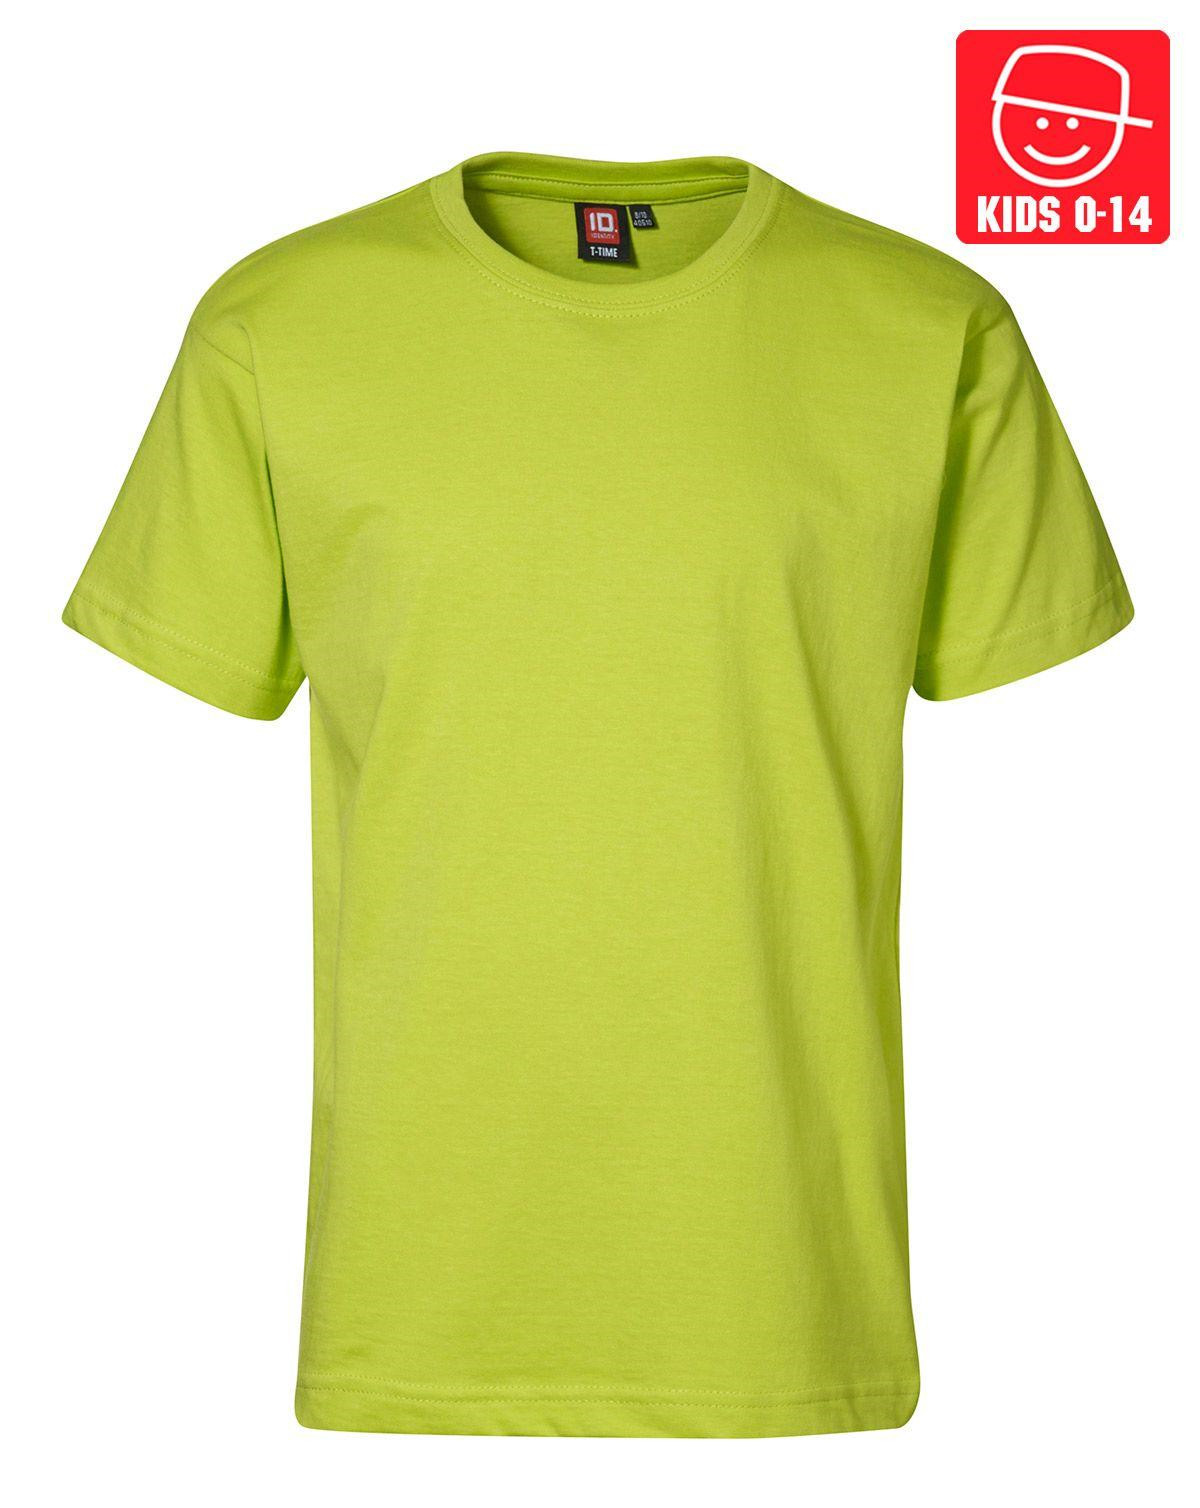 Image of   ID T-TIME T-shirt (Lime, 122)